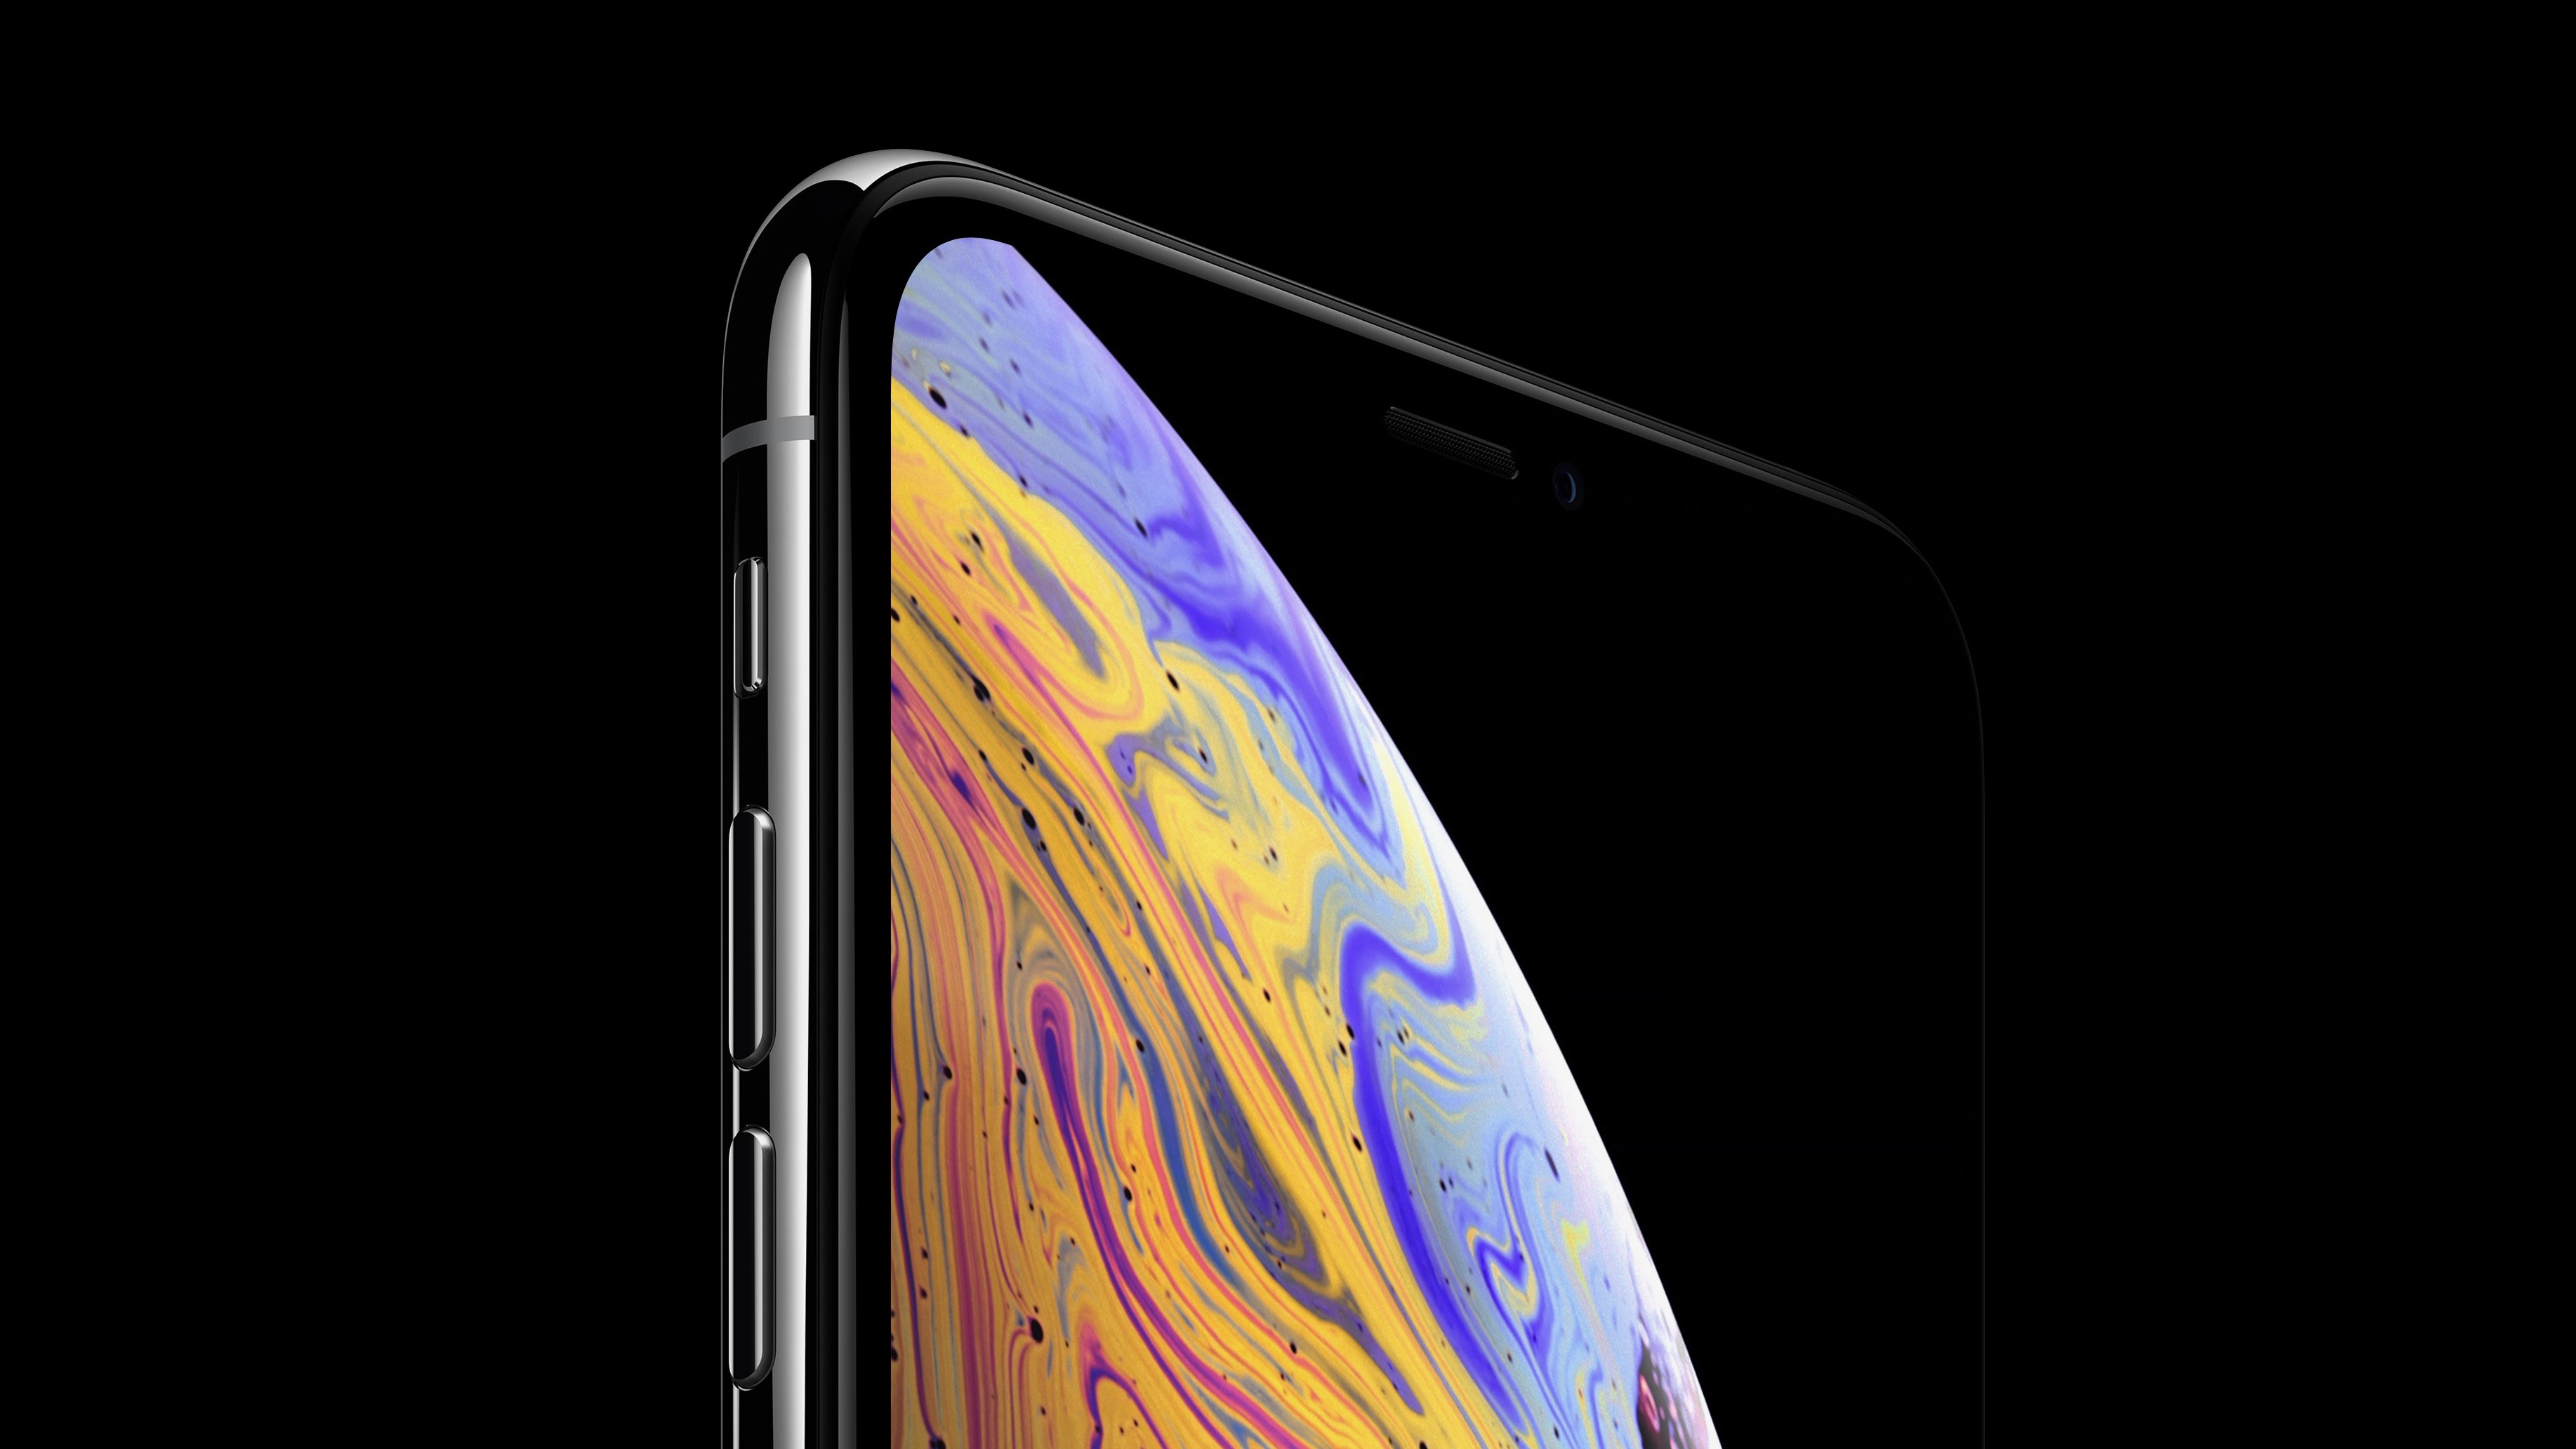 Download The New Iphone Xs And Iphone Xs Max Wallpapers Right Here Gallery 9to5mac